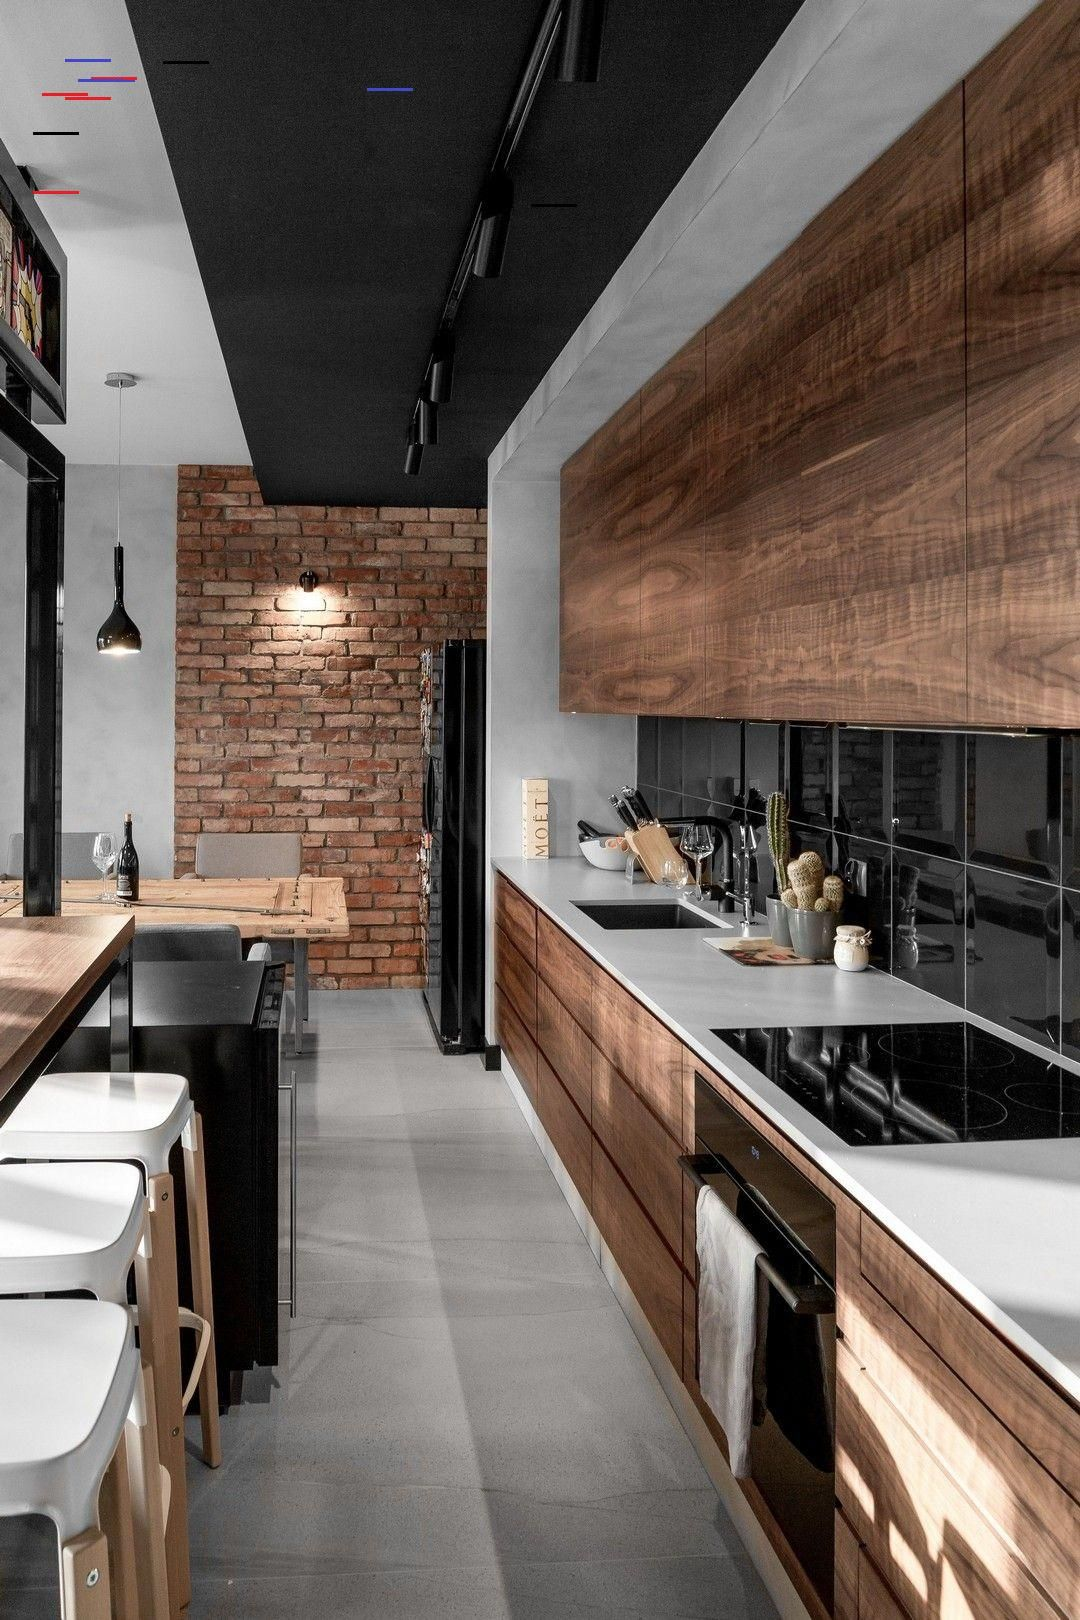 Modern Farmhouse Style Shiplap Ideas A Love Of Minimalist Design Doesn T Mean You Can T Inject Modern Kitchen Design Interior Design Kitchen Home Decor Kitchen